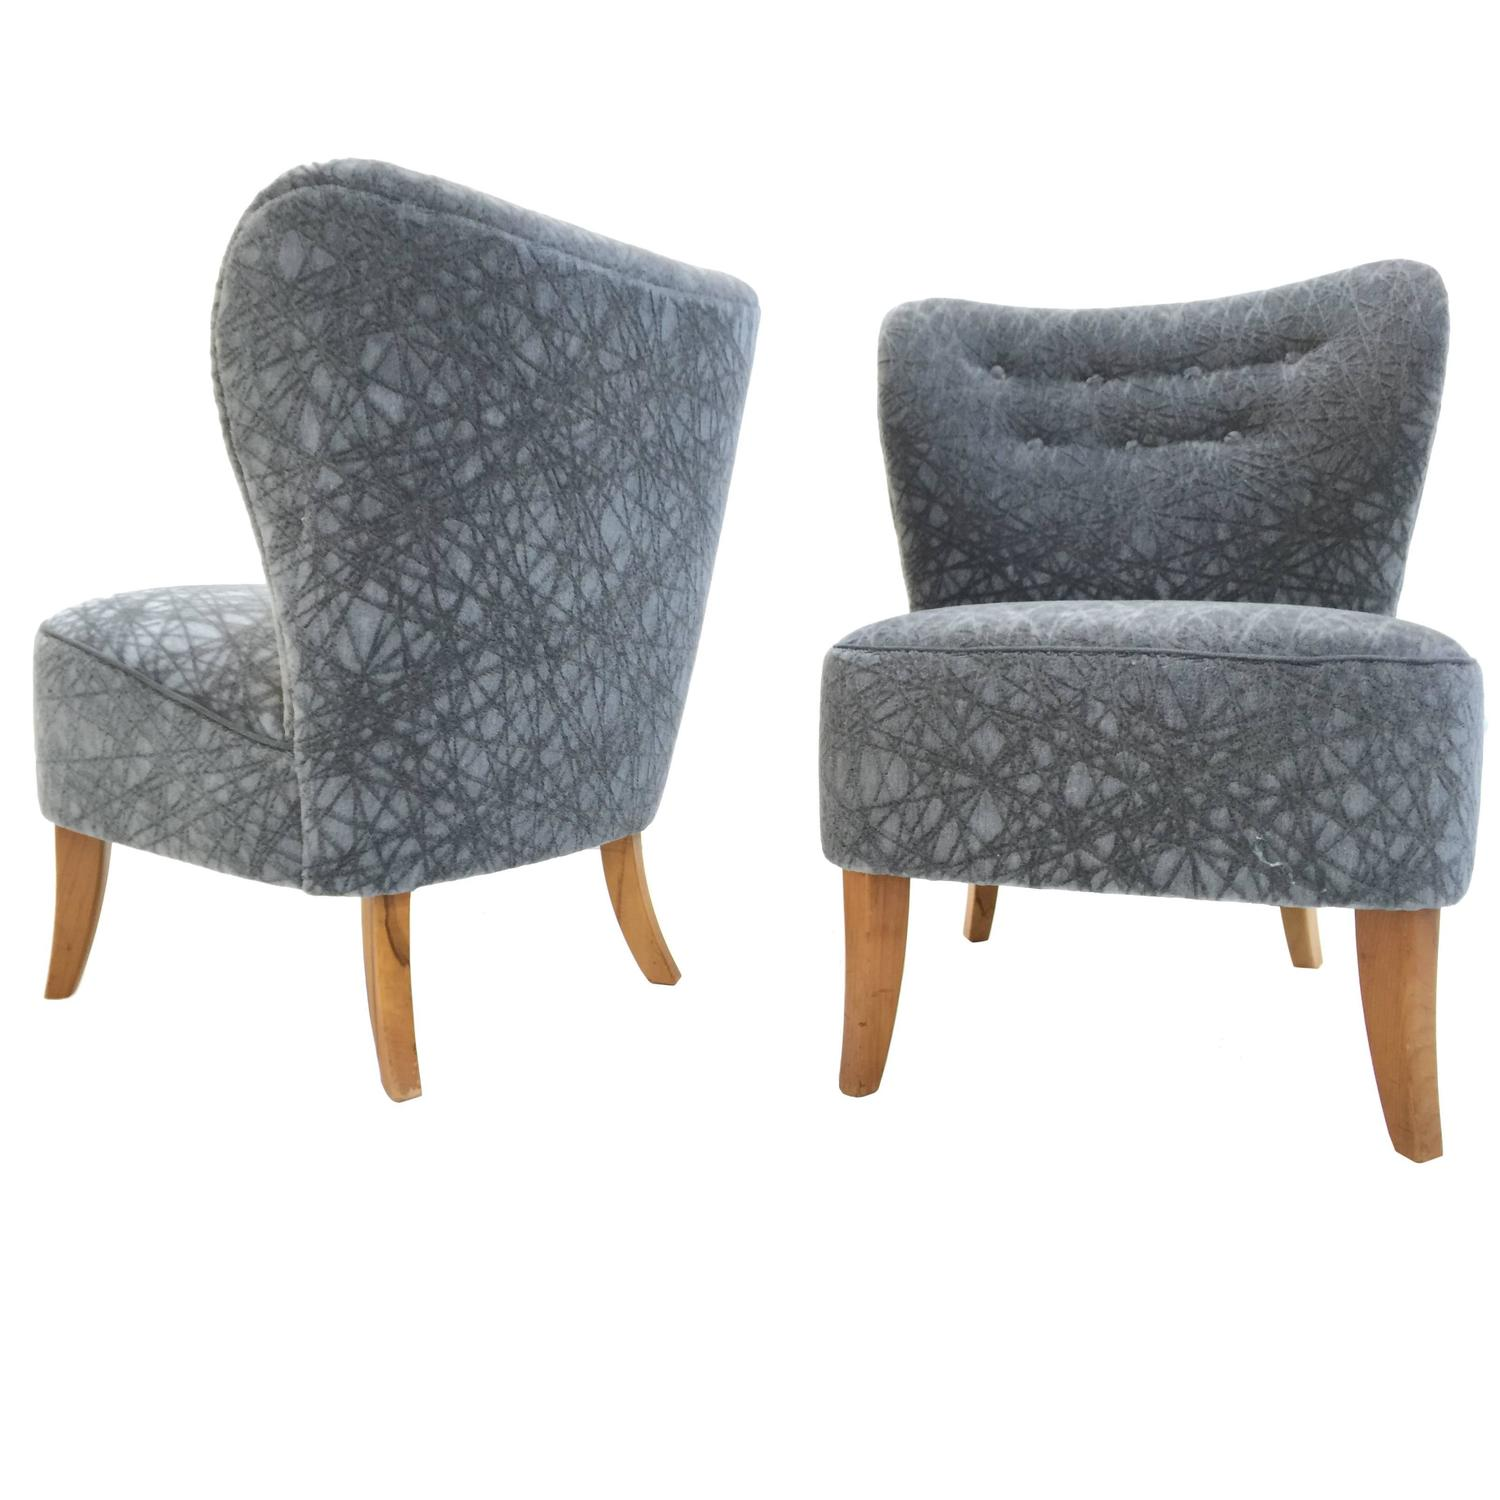 grey velvet slipper chair painted kitchen chairs ideas pair of 1950s tijsseling in geometric